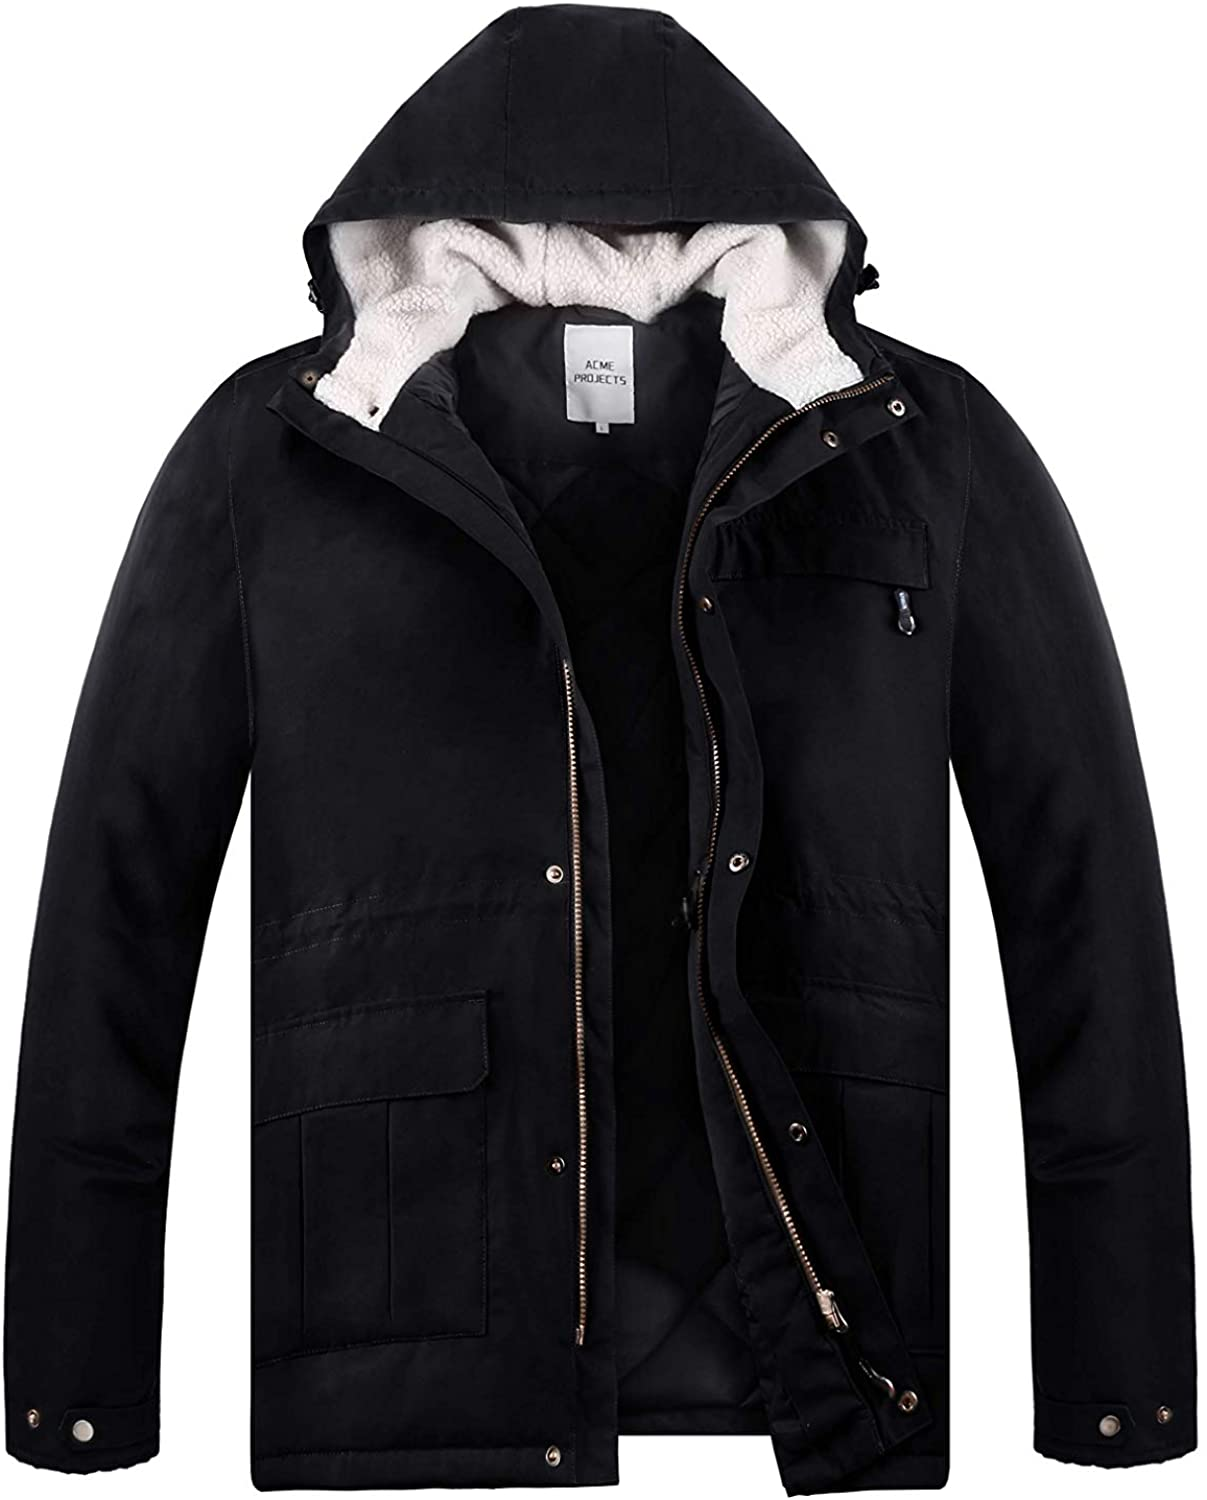 Acme Projects Mens Parka, Waterproof, Breathable, 3M Thinsulate Insulation, YKK Zipper, 8000mm/3000gm, 100% Tape Seam